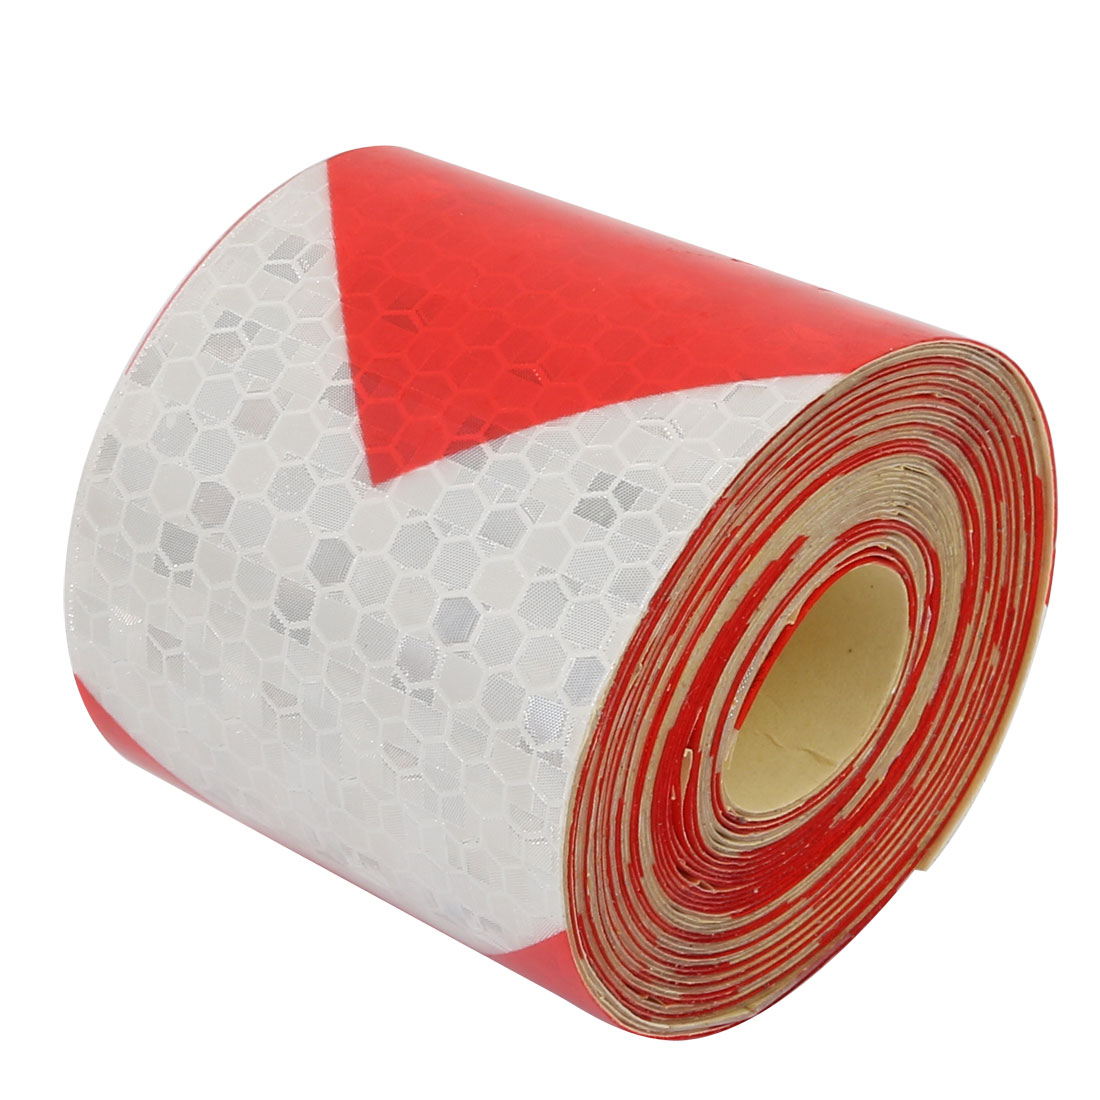 5cm Wide 5Meters Long Honeycomb Adhesive Reflective Warning Tape Red White